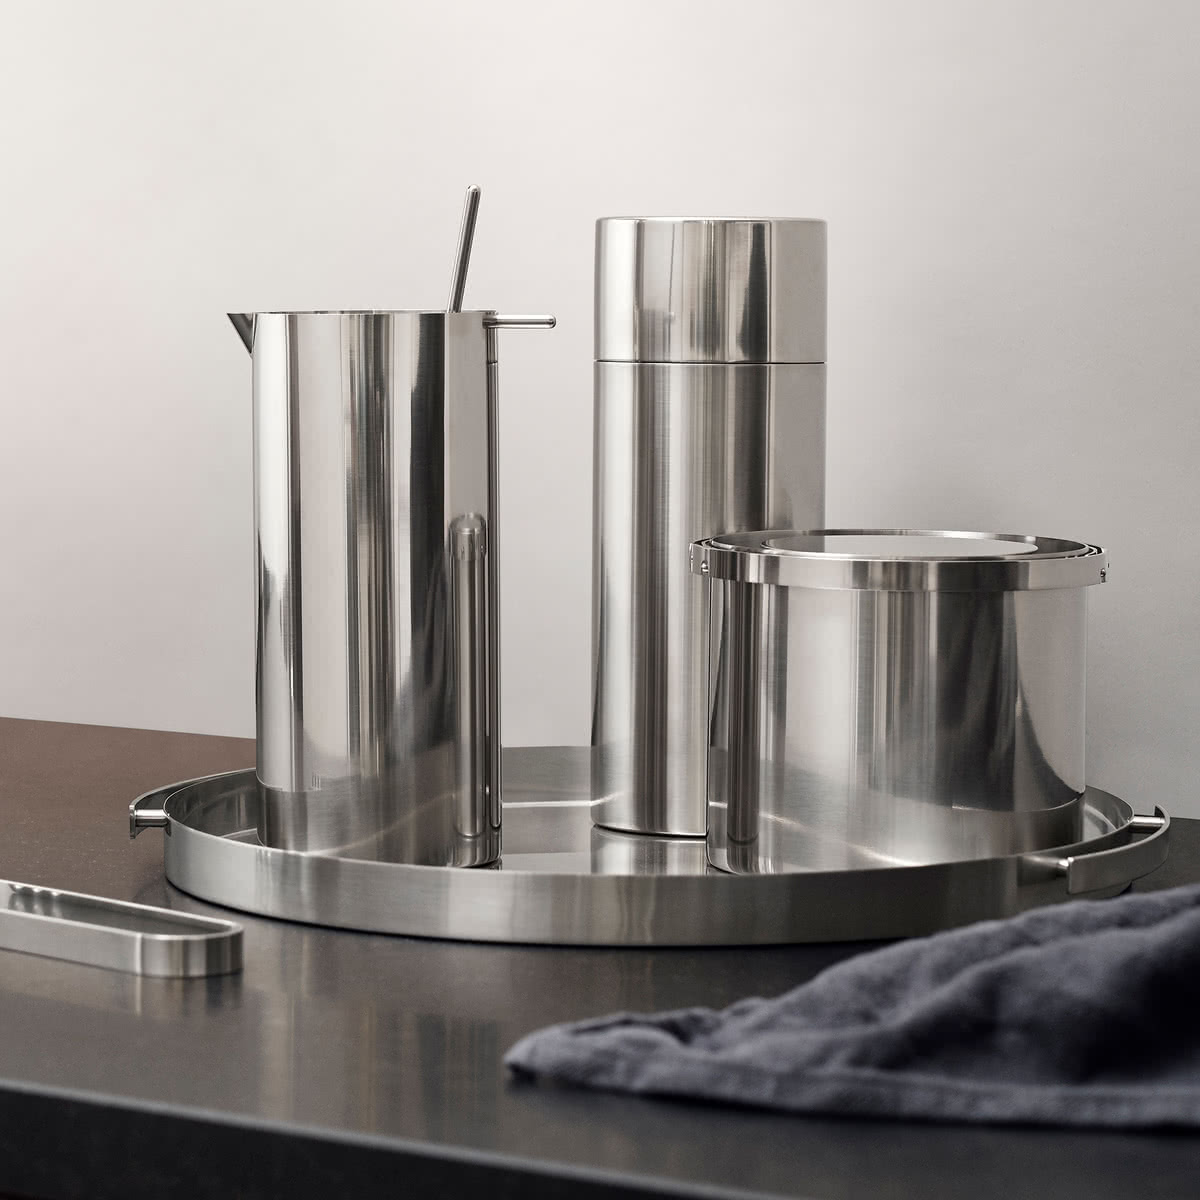 Stelton - Cylinda Cocktail Shaker, Cocktail Shaker with Spoon, ice Bucket, ice tongs and serving tray 2